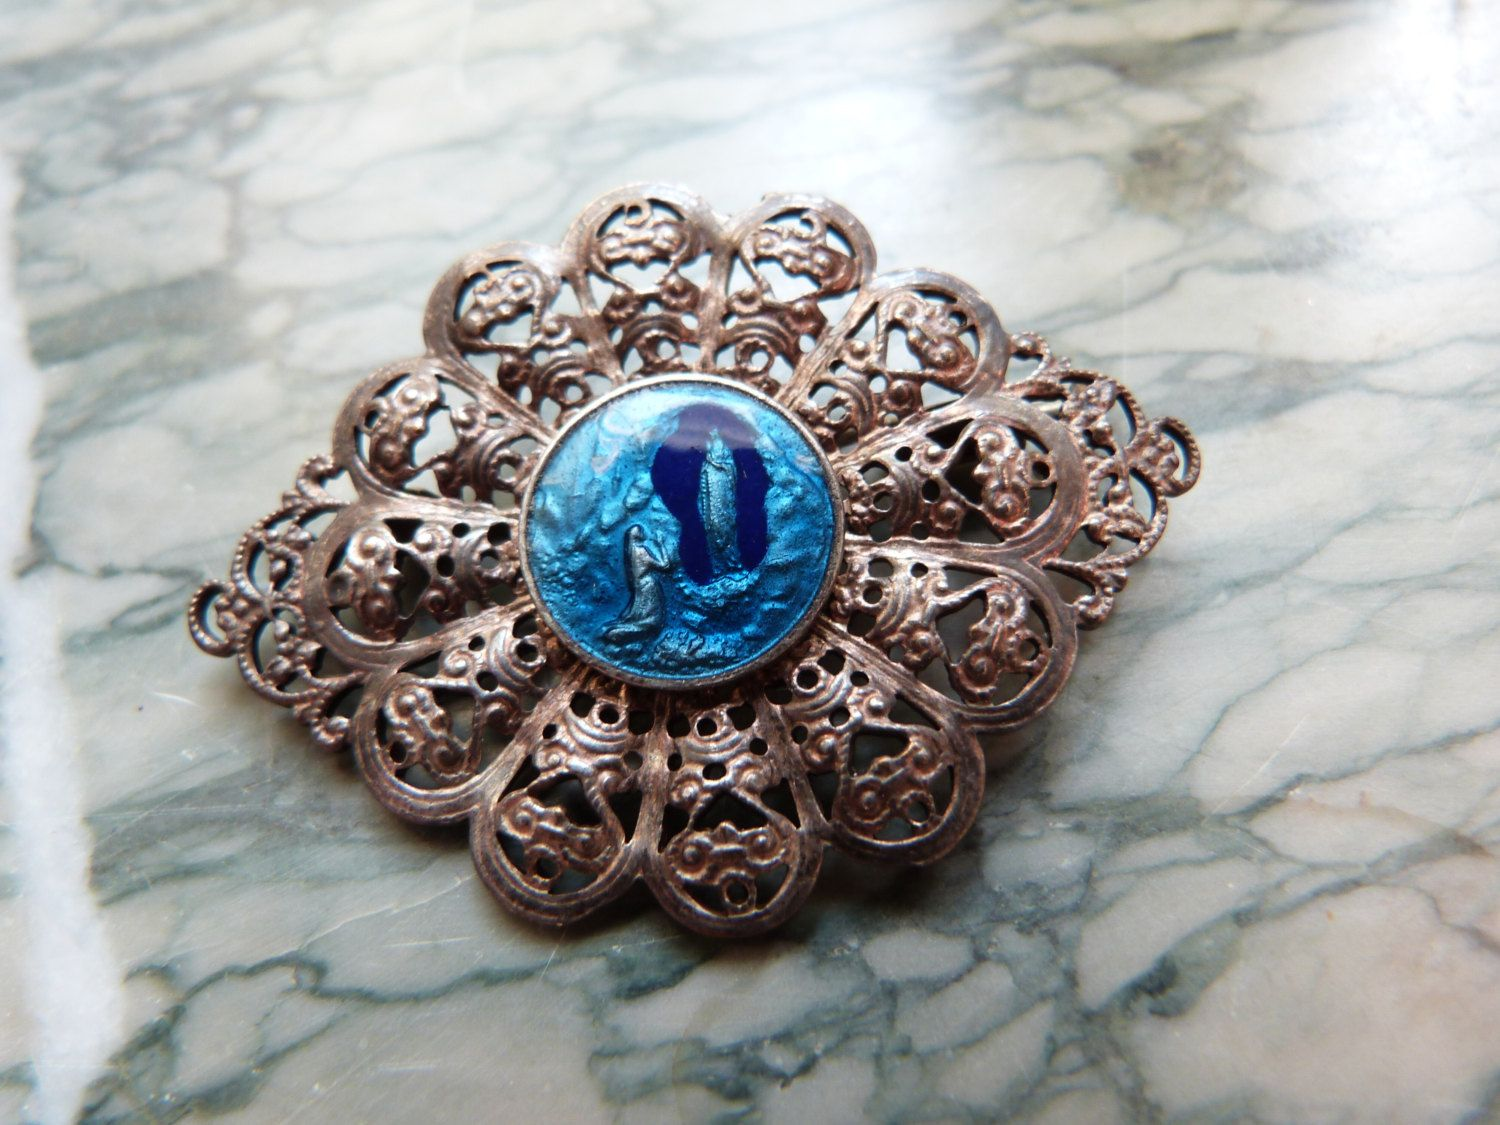 Antique French Religious Brooch Pin Blue Enamel Miraculous Medal Our Lady Of  Lourdes Holy Virgin Mary, Filigree Brooch Our Holy Mother Marie